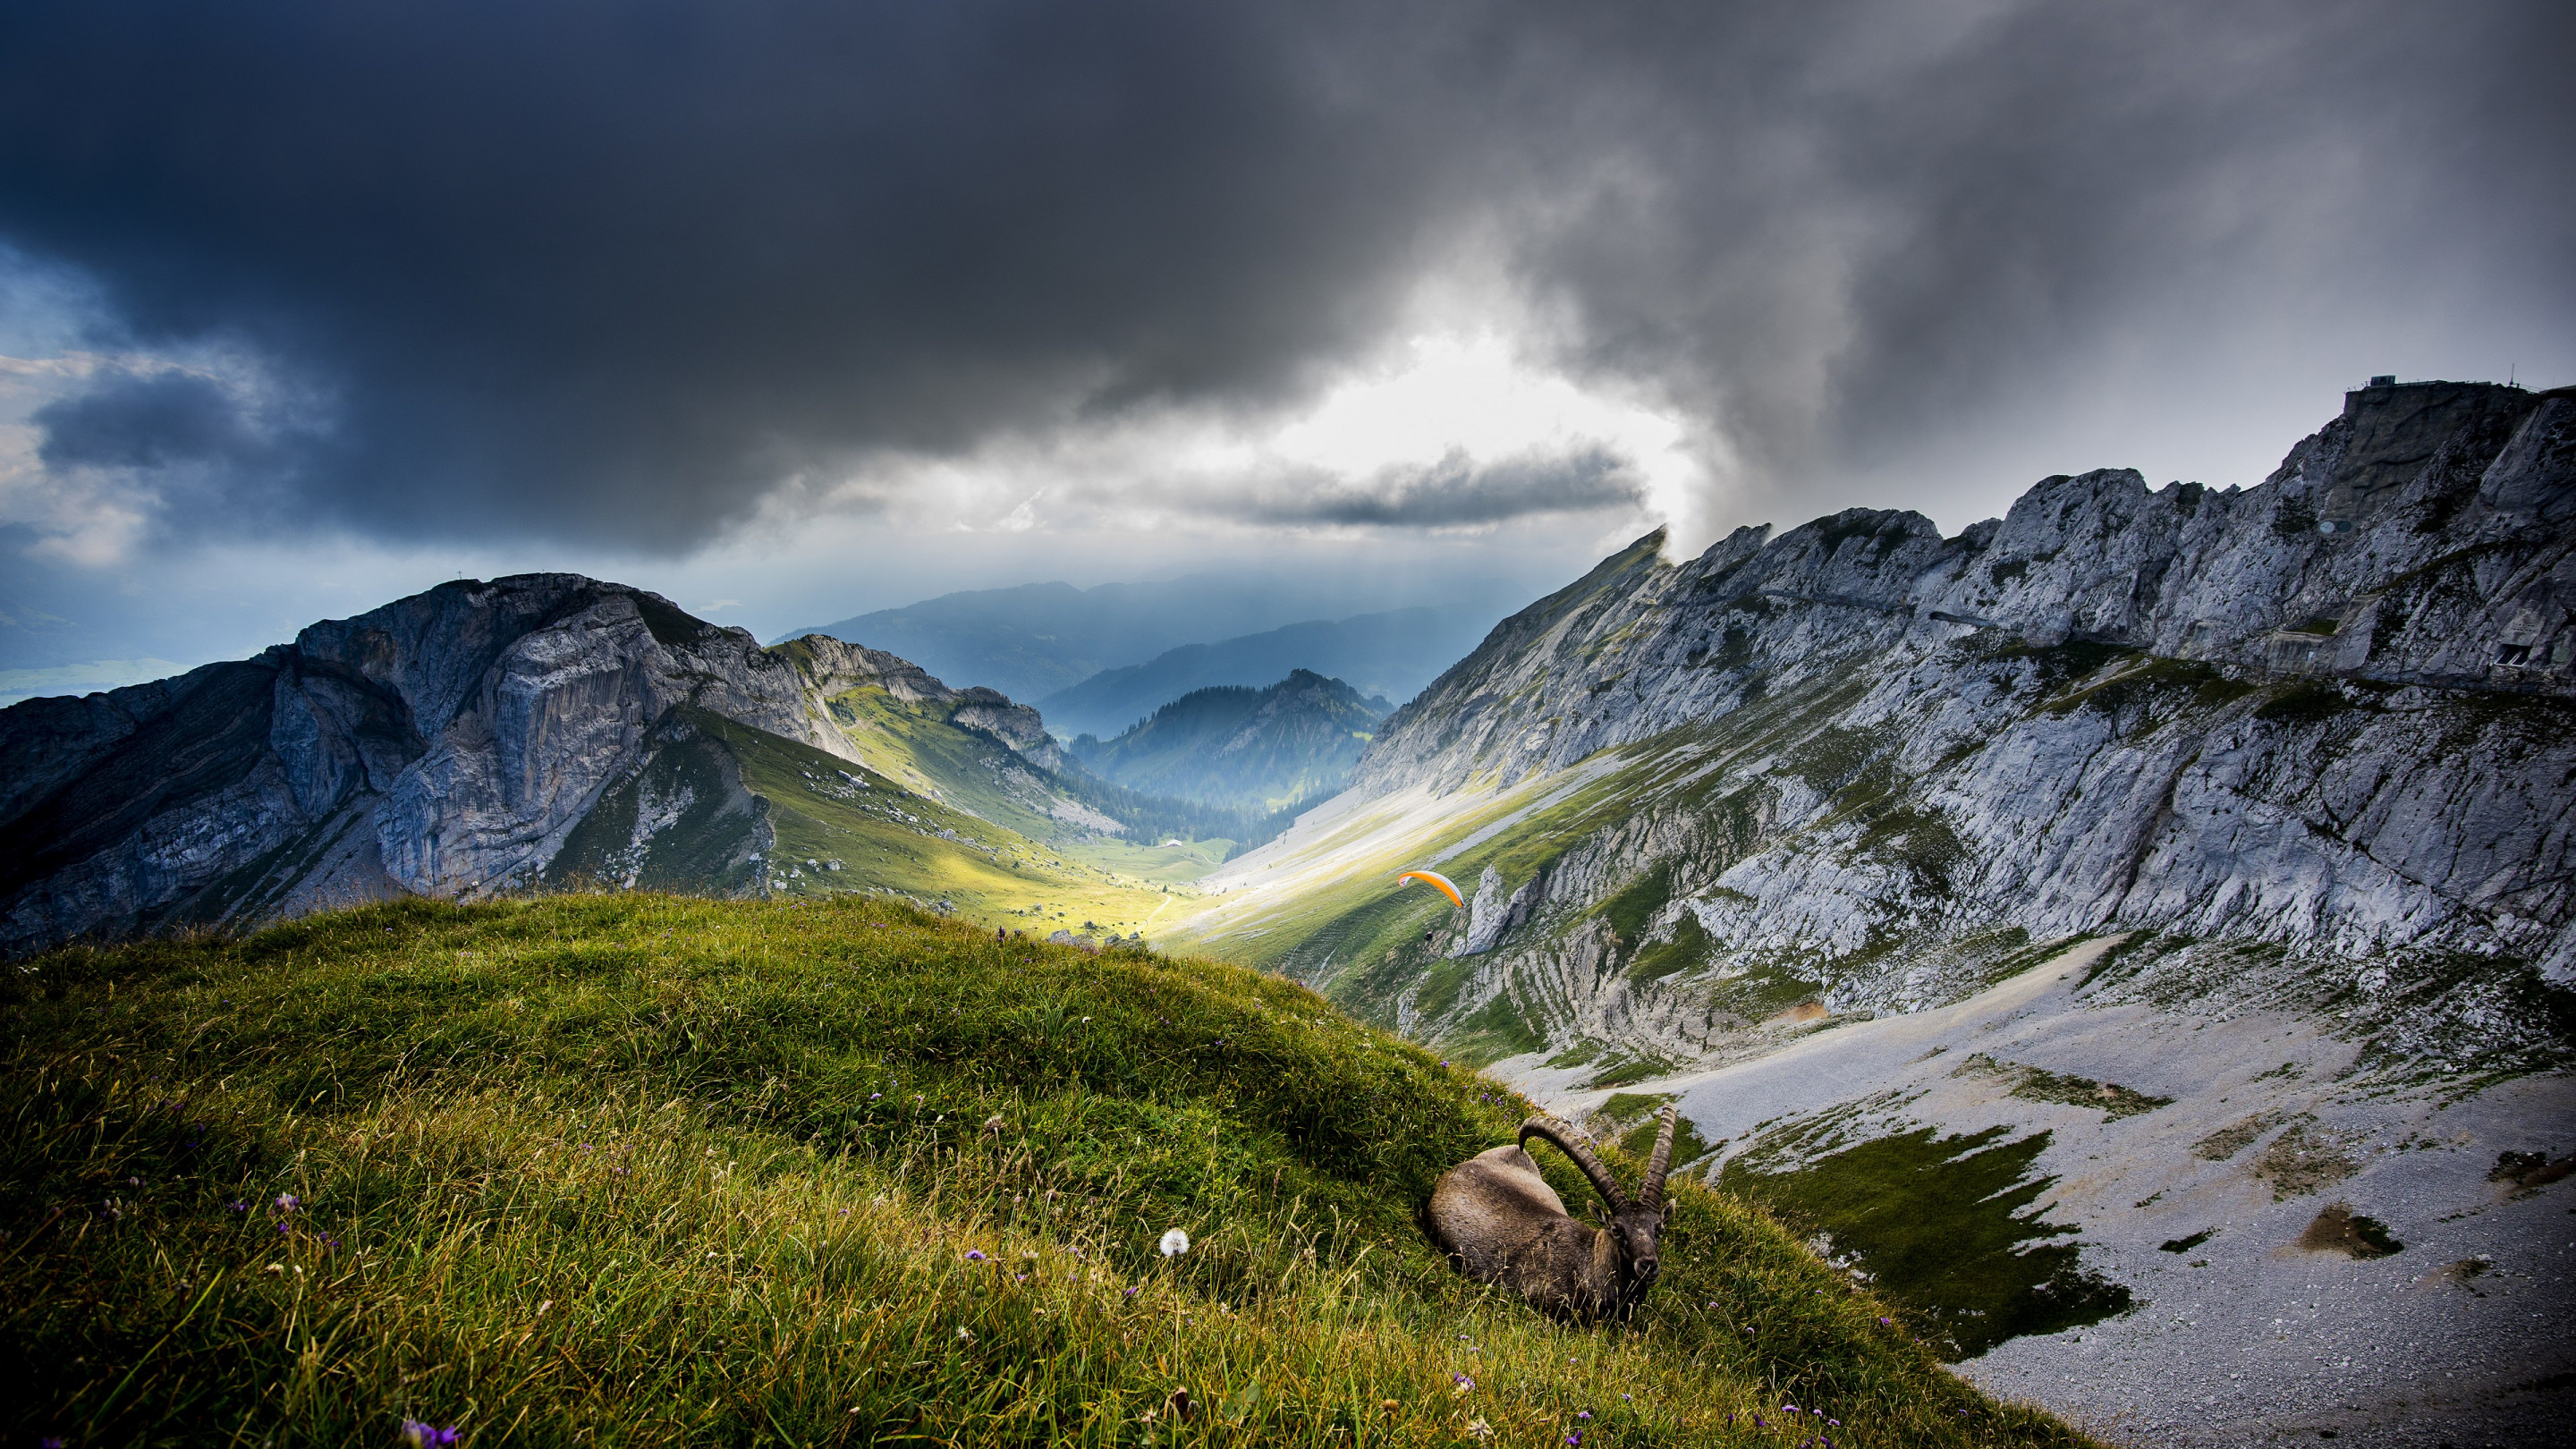 Ibex on Mount Pilatus wallpaper 2880x1620